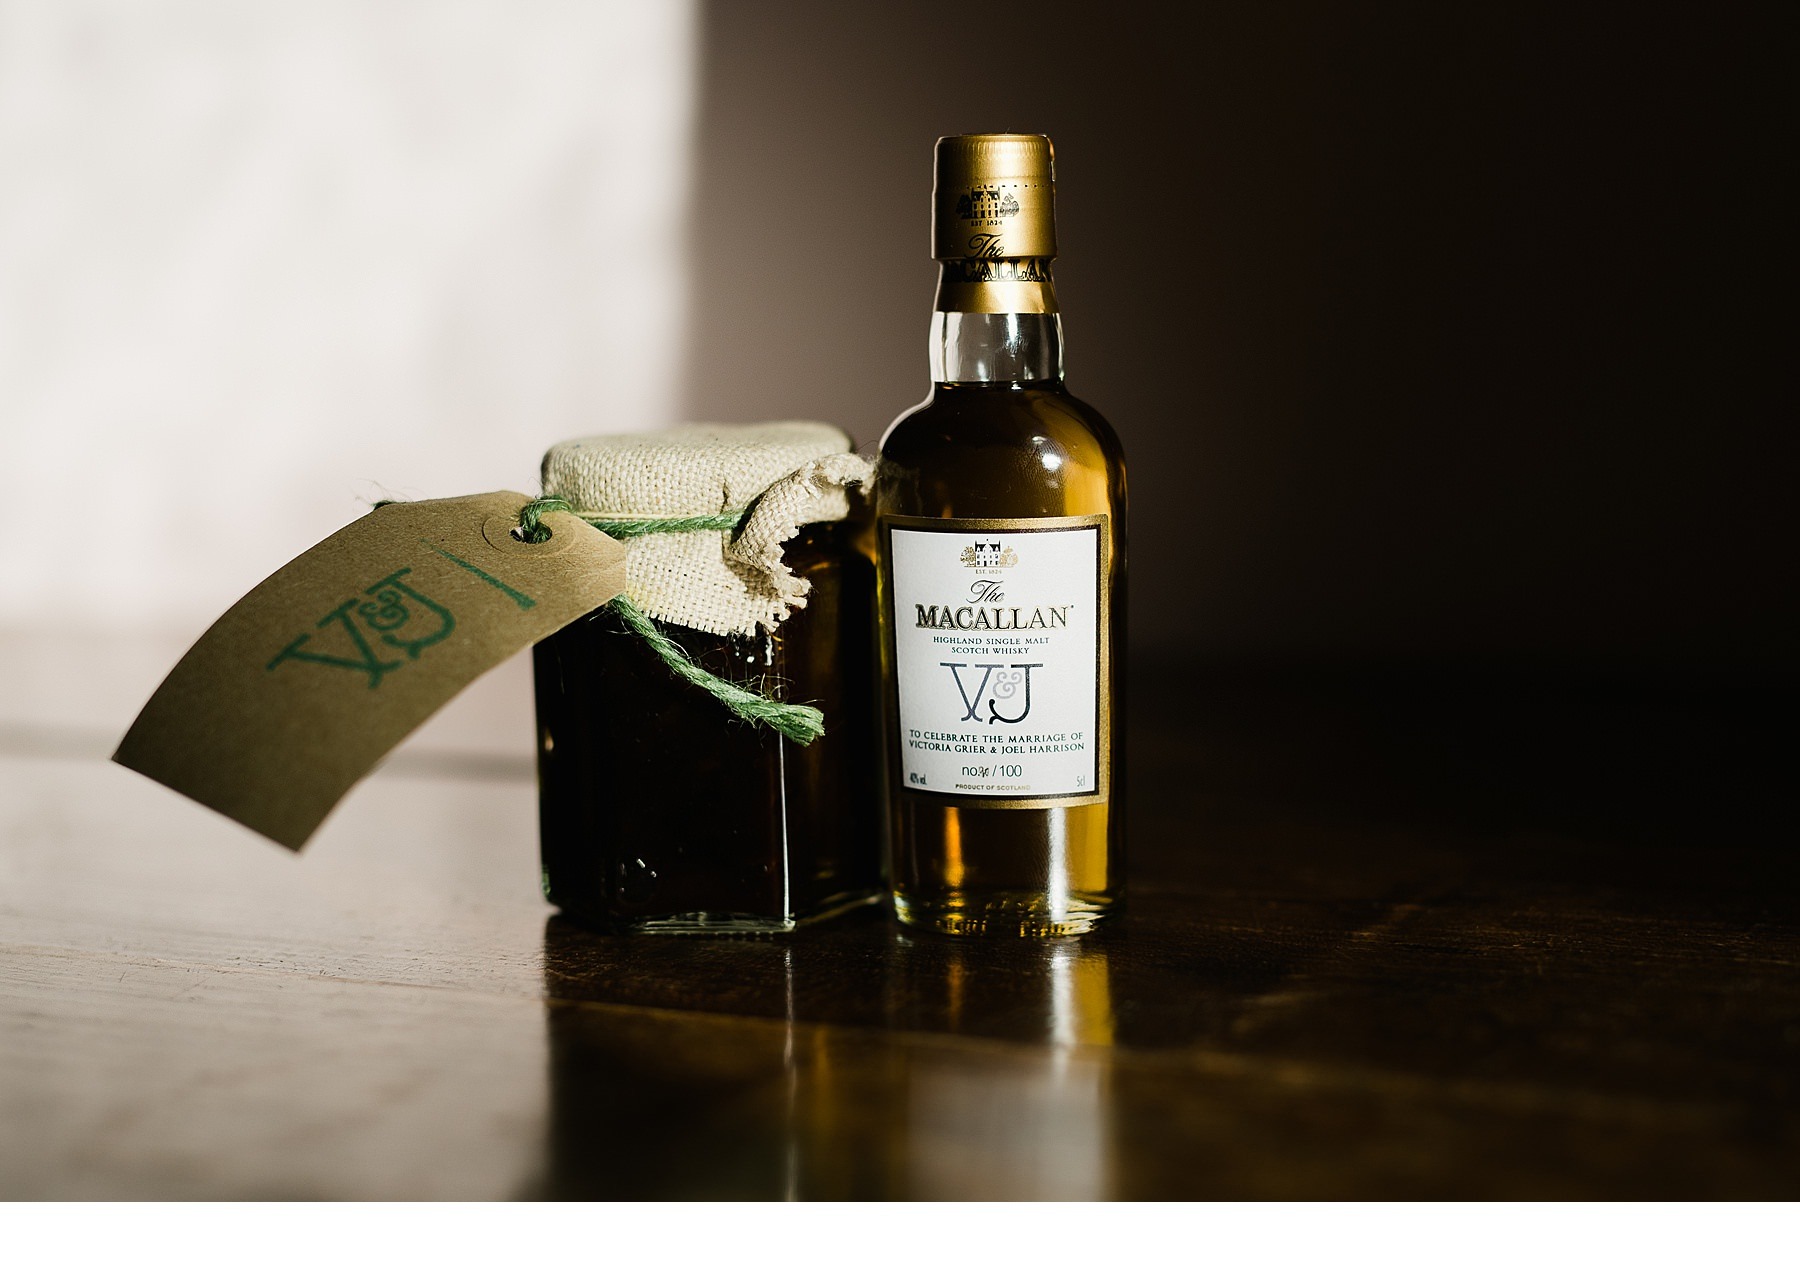 Customised whisky bottle for the bride and groom with their initials and some homemade chutney favours